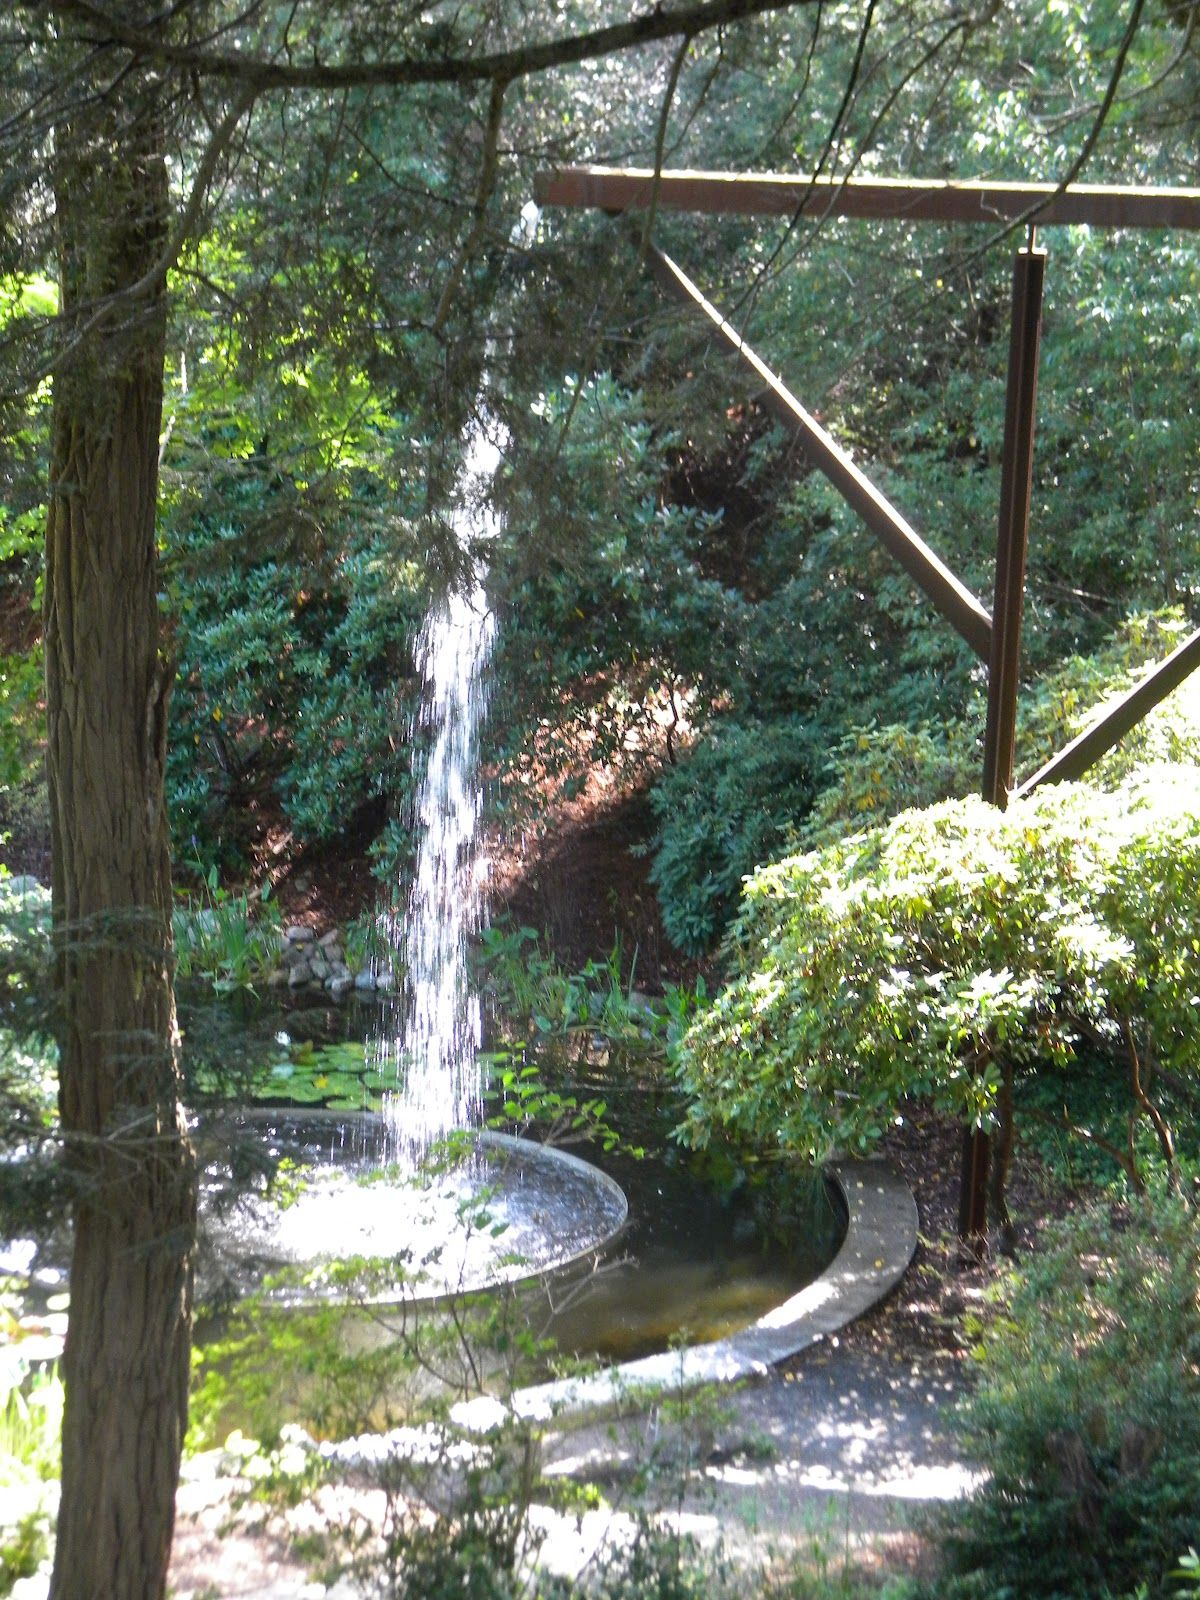 The Flume At Heritage Museums And Gardens In Sandwich Ma Garden